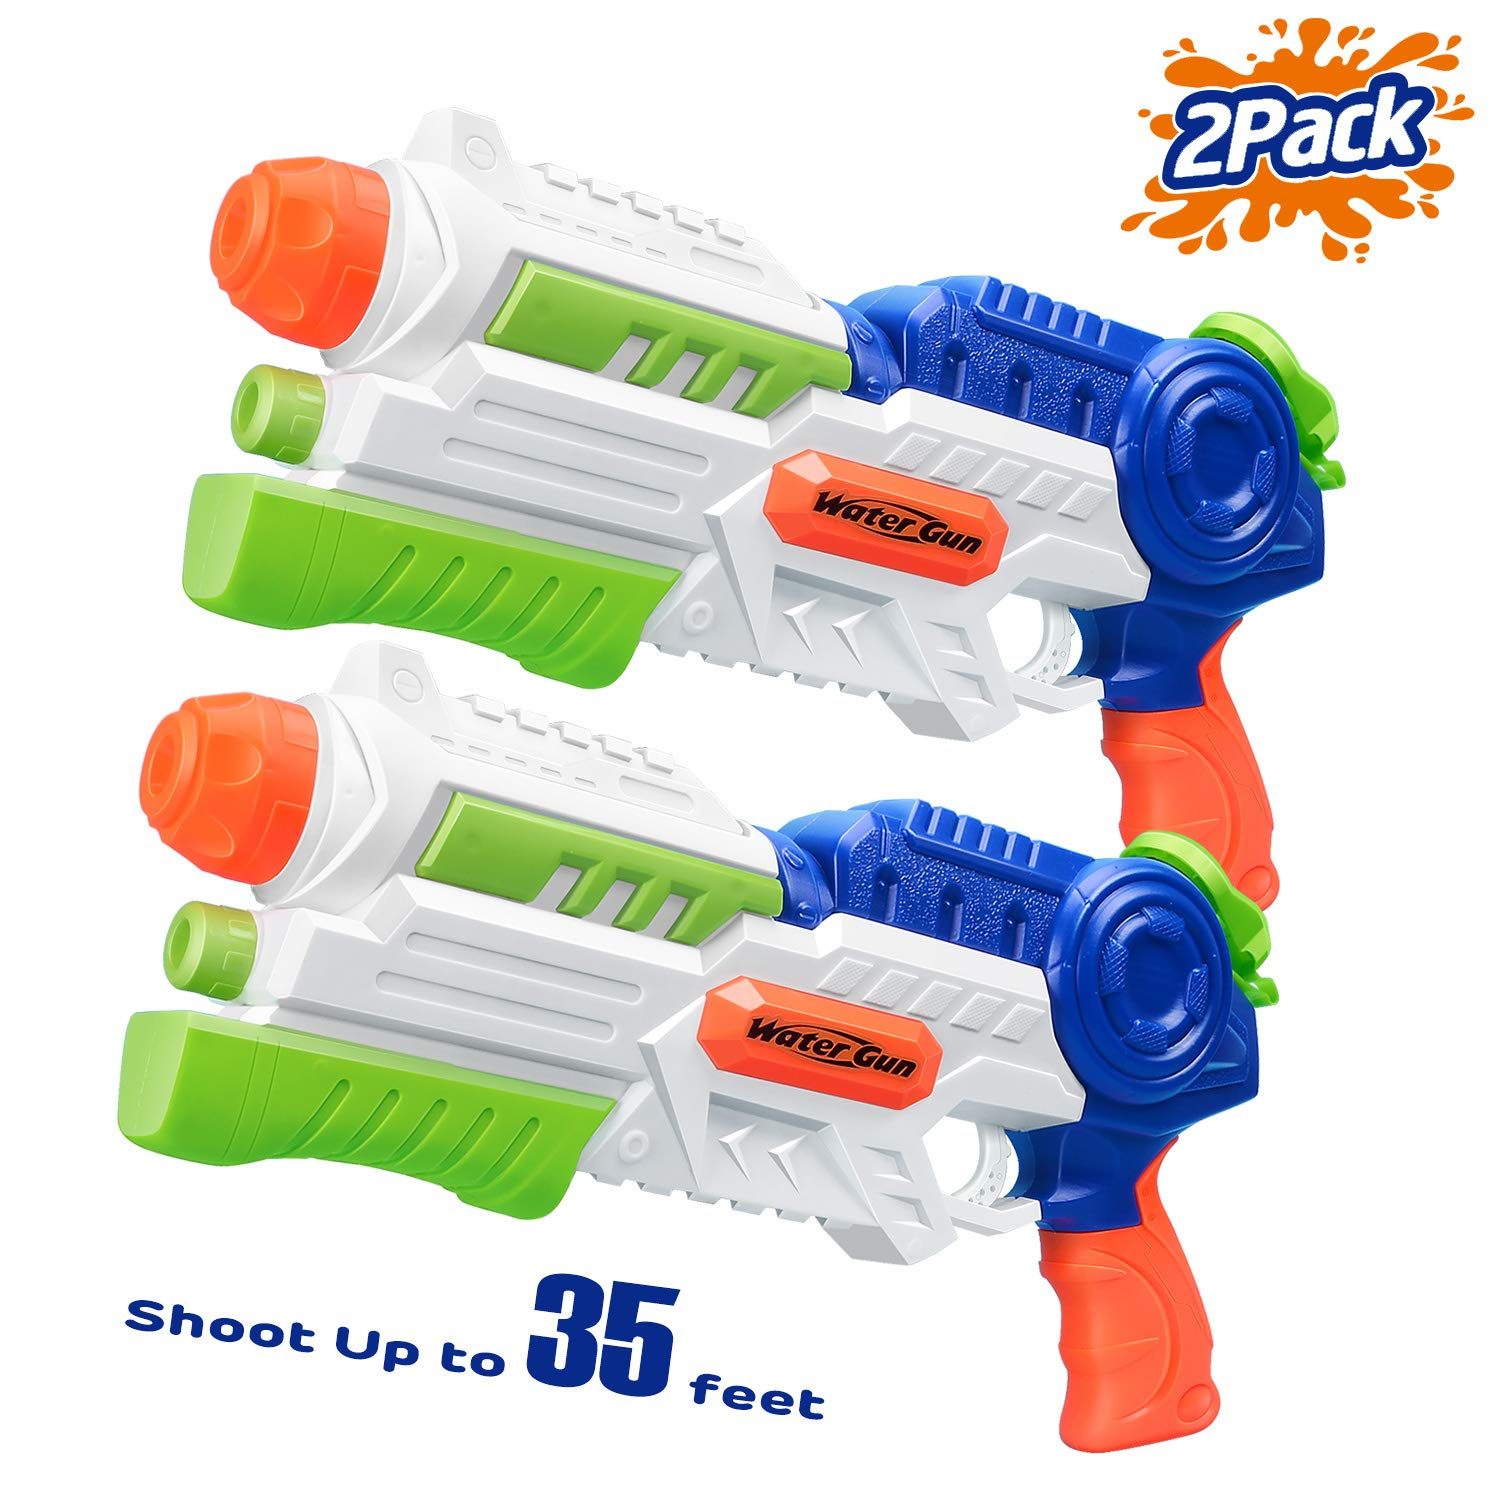 HITOP Super Soaker Water Gun, 2 Pack Squirt Guns Water Guns for Kids Adults, 36oz High Capacity Fast Soaking Trigger Summer Water Blaster Toy for Swimming Pools Party Outdoor Beach Sand Water Fighting by HITOP